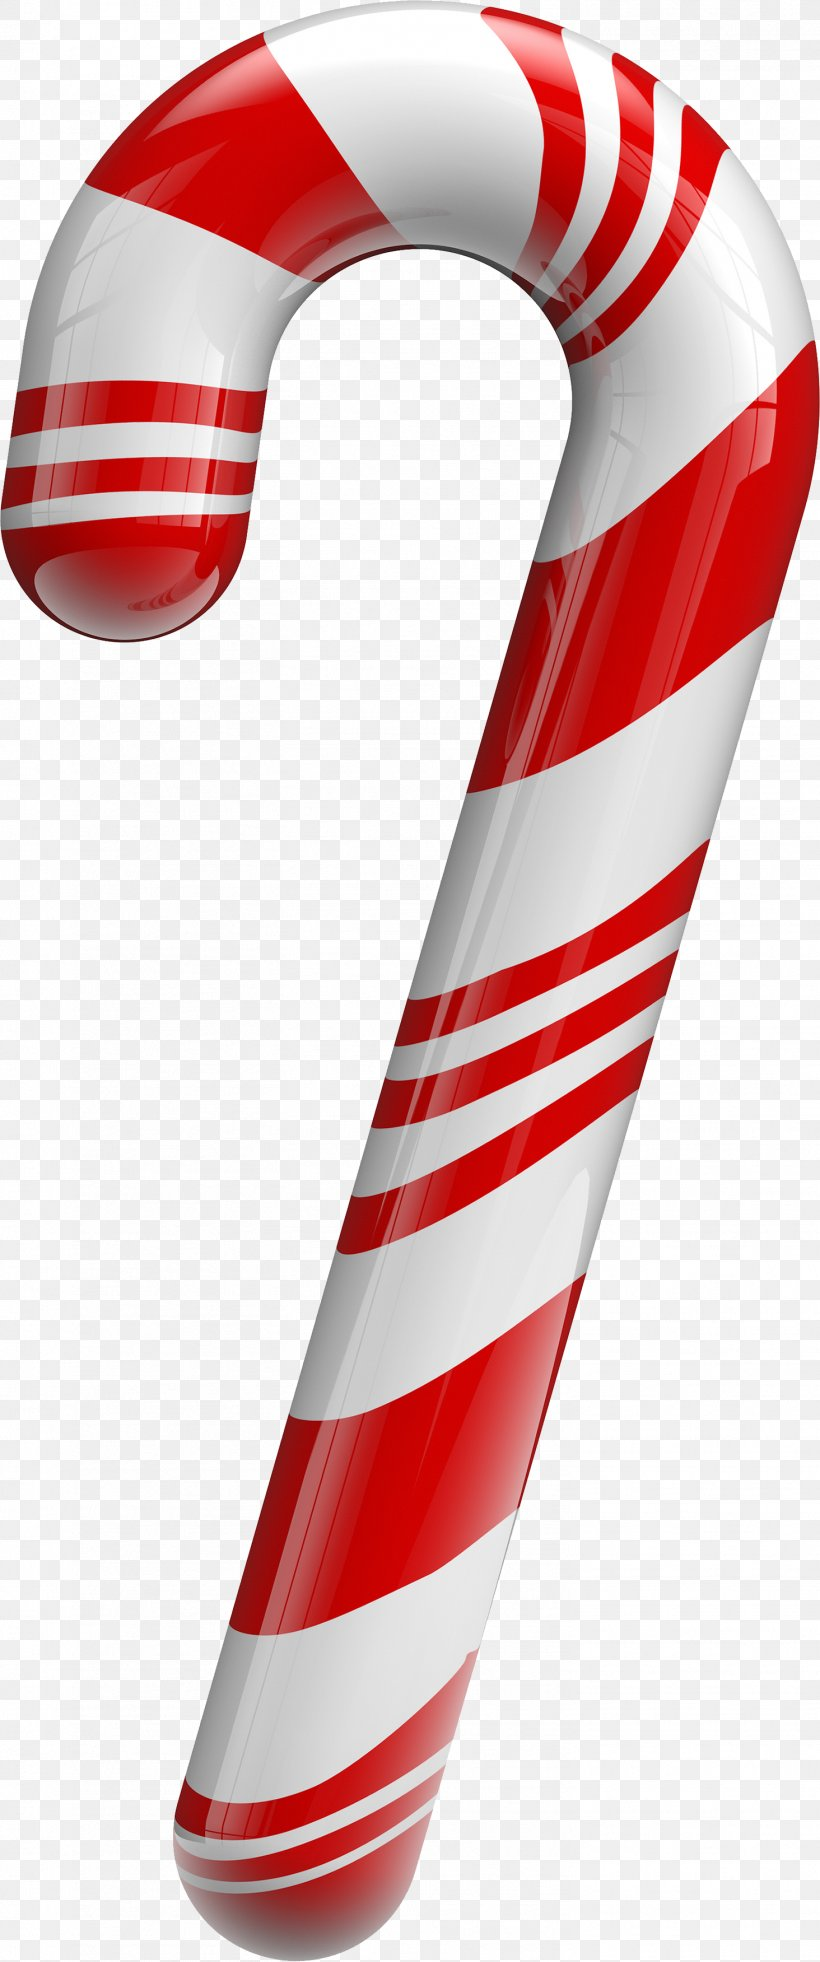 Christmas Candy Png.Candy Cane Lollipop Clip Art Png 1464x3503px Candy Cane